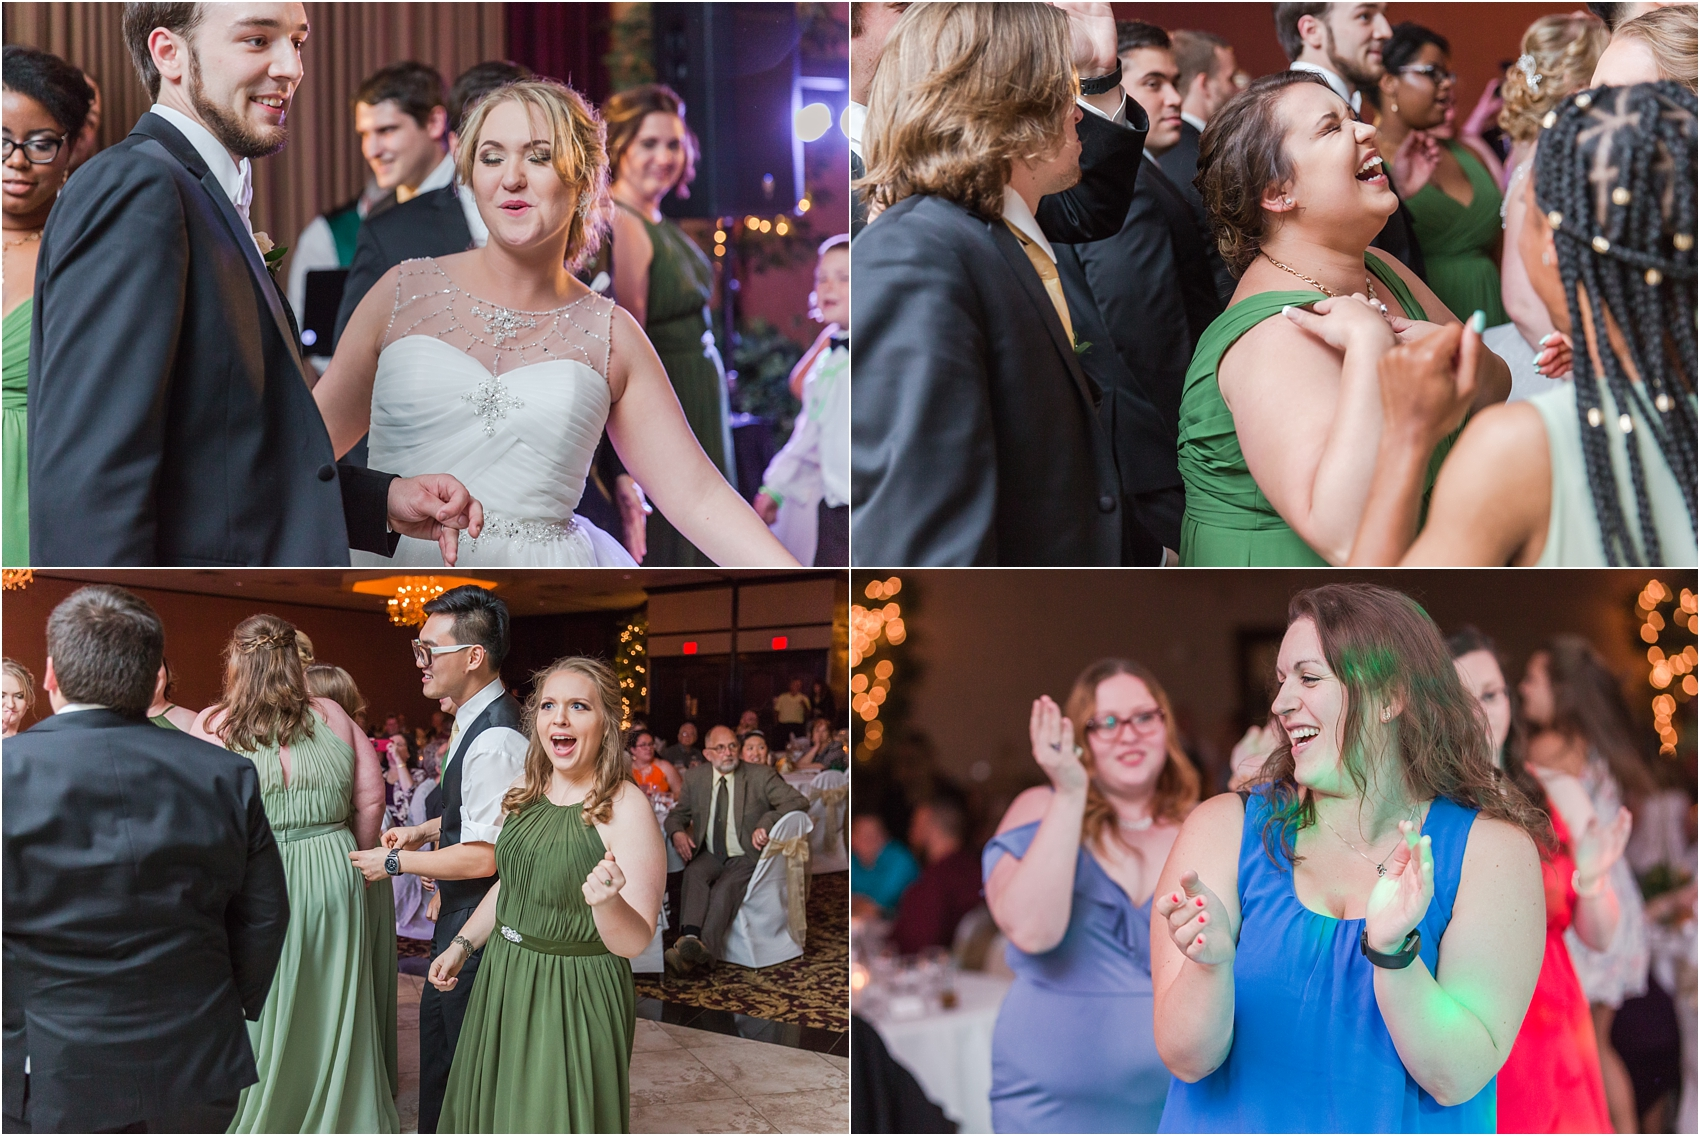 lord-of-the-rings-inspired-wedding-photos-at-crystal-gardens-in-howell-mi-by-courtney-carolyn-photography_0092.jpg